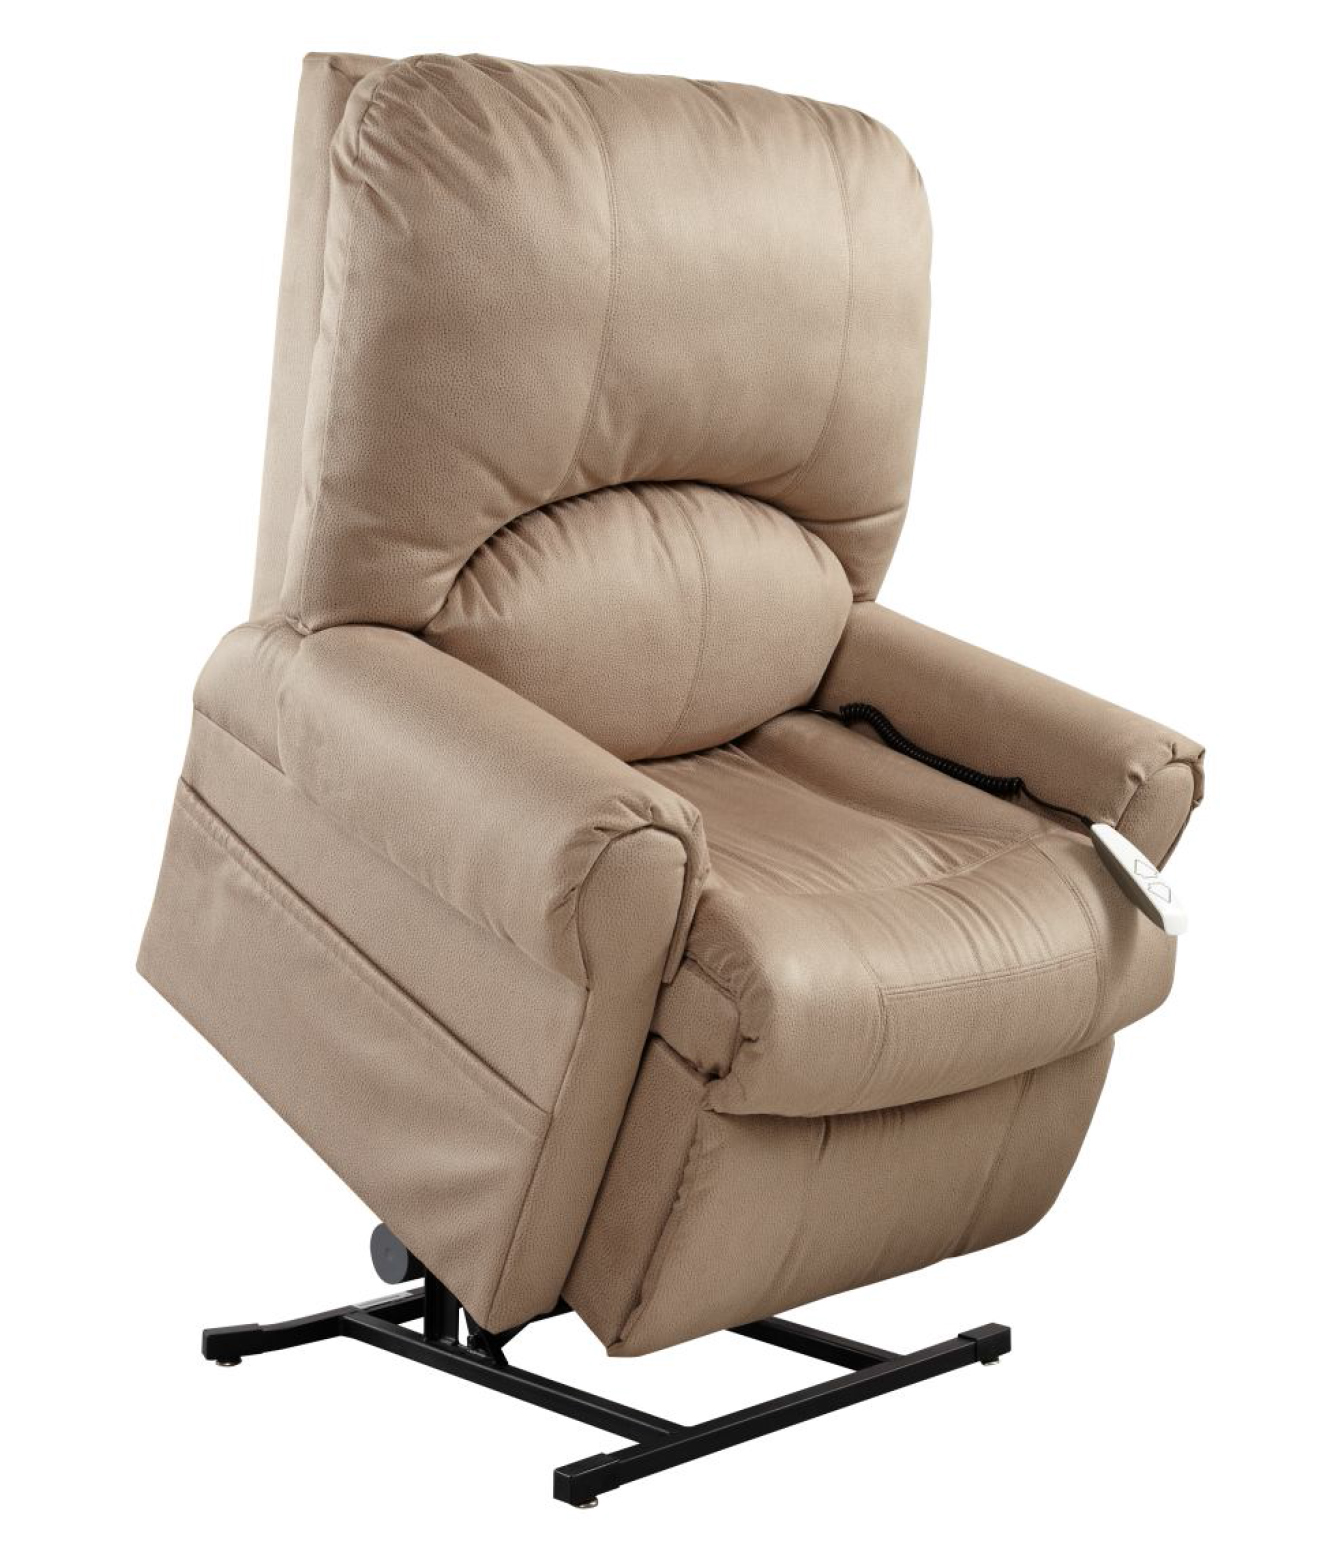 Recliner Lift Chairs As 6001 Torch Electric Power Recliner Lift Chair By Mega